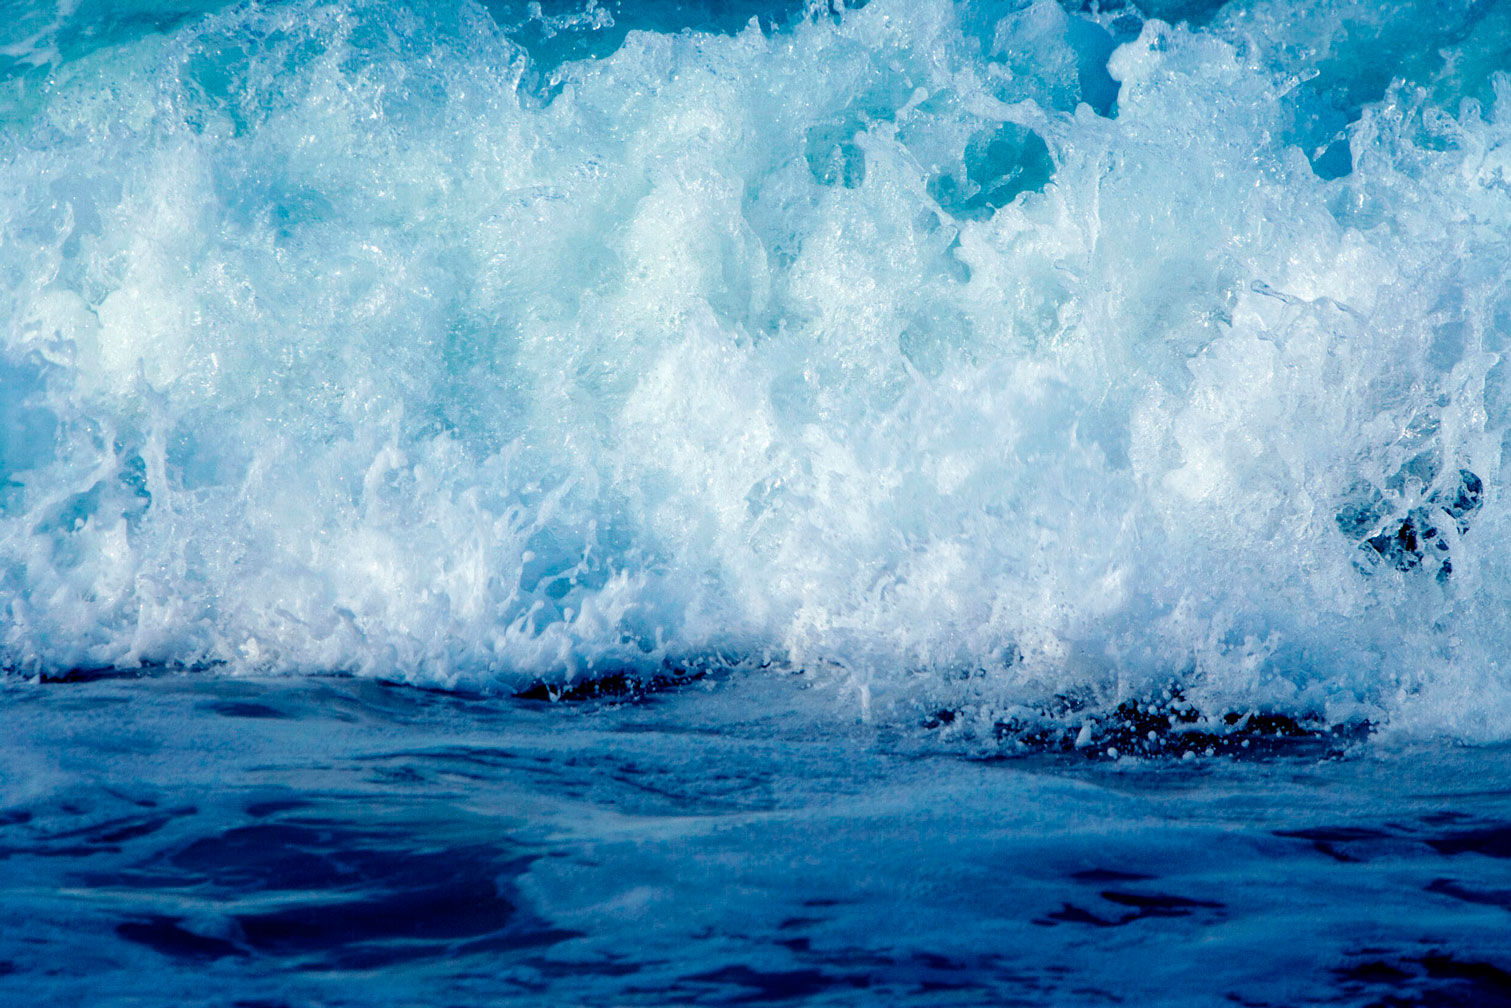 18_1atlantic_waves_9319.jpg